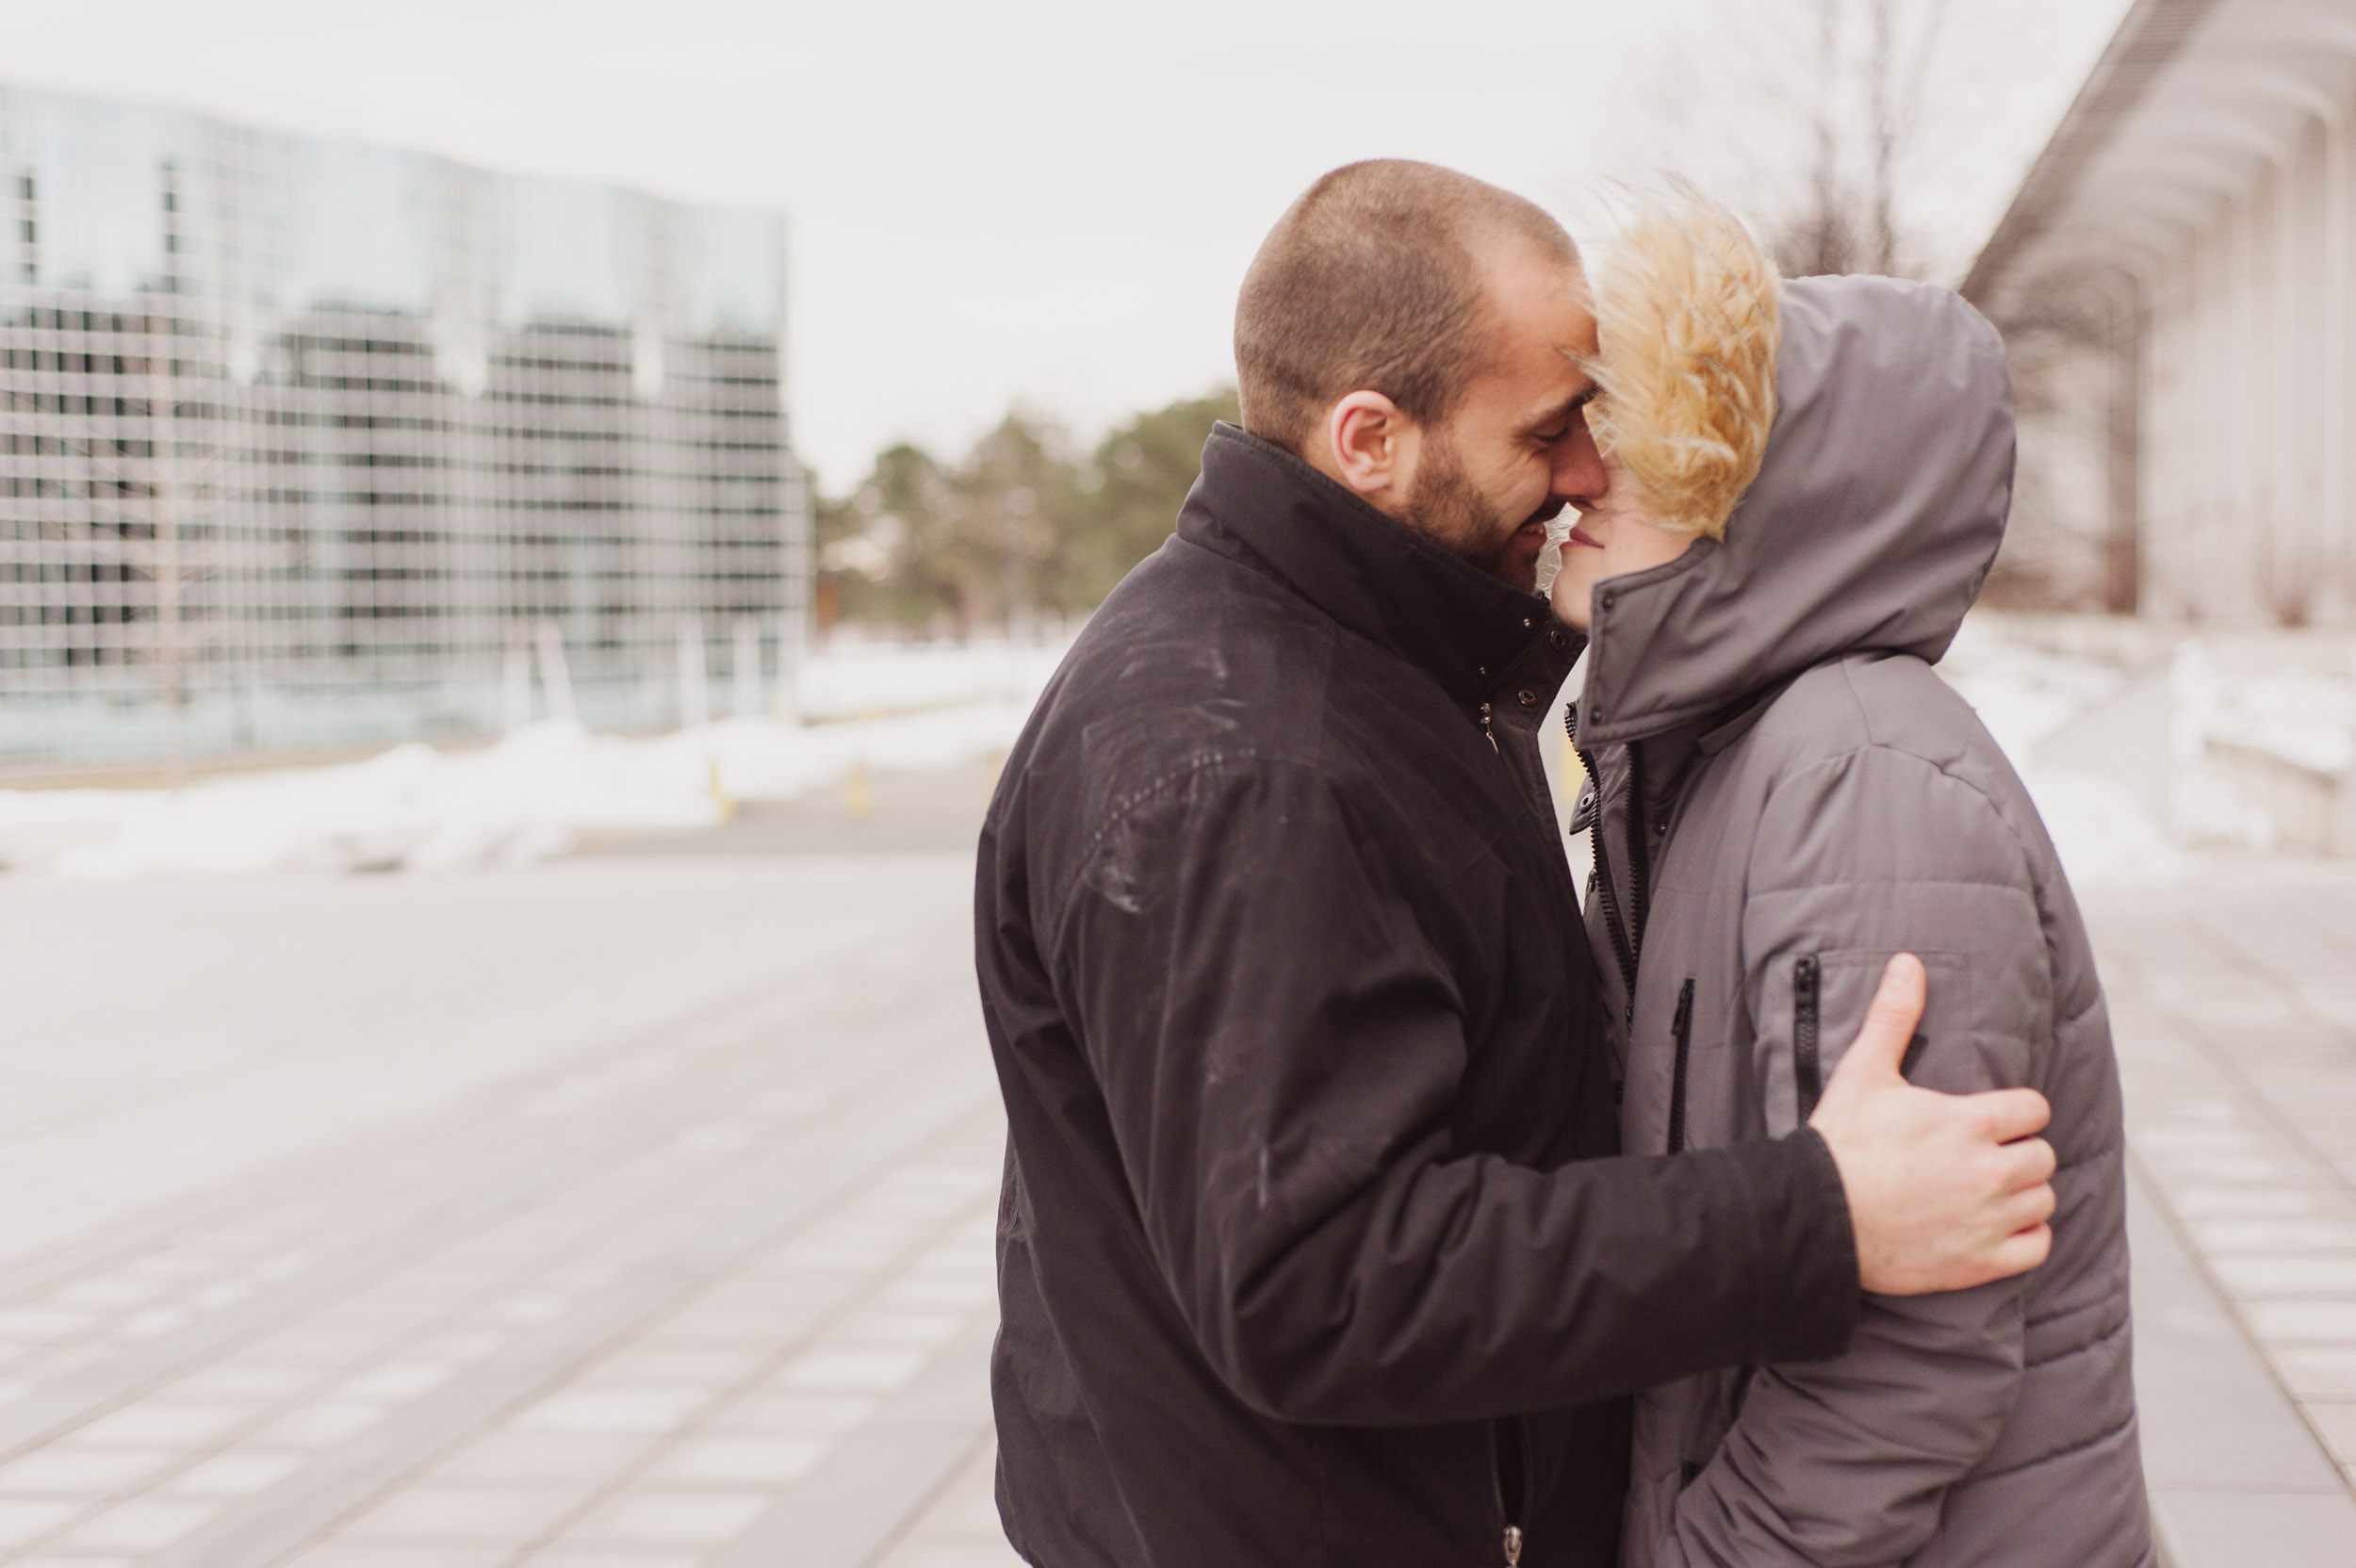 A young Caucasian man and woman, who are bundled up in warm coats, kiss as the rising sun shines on them at the University of Albany campus.